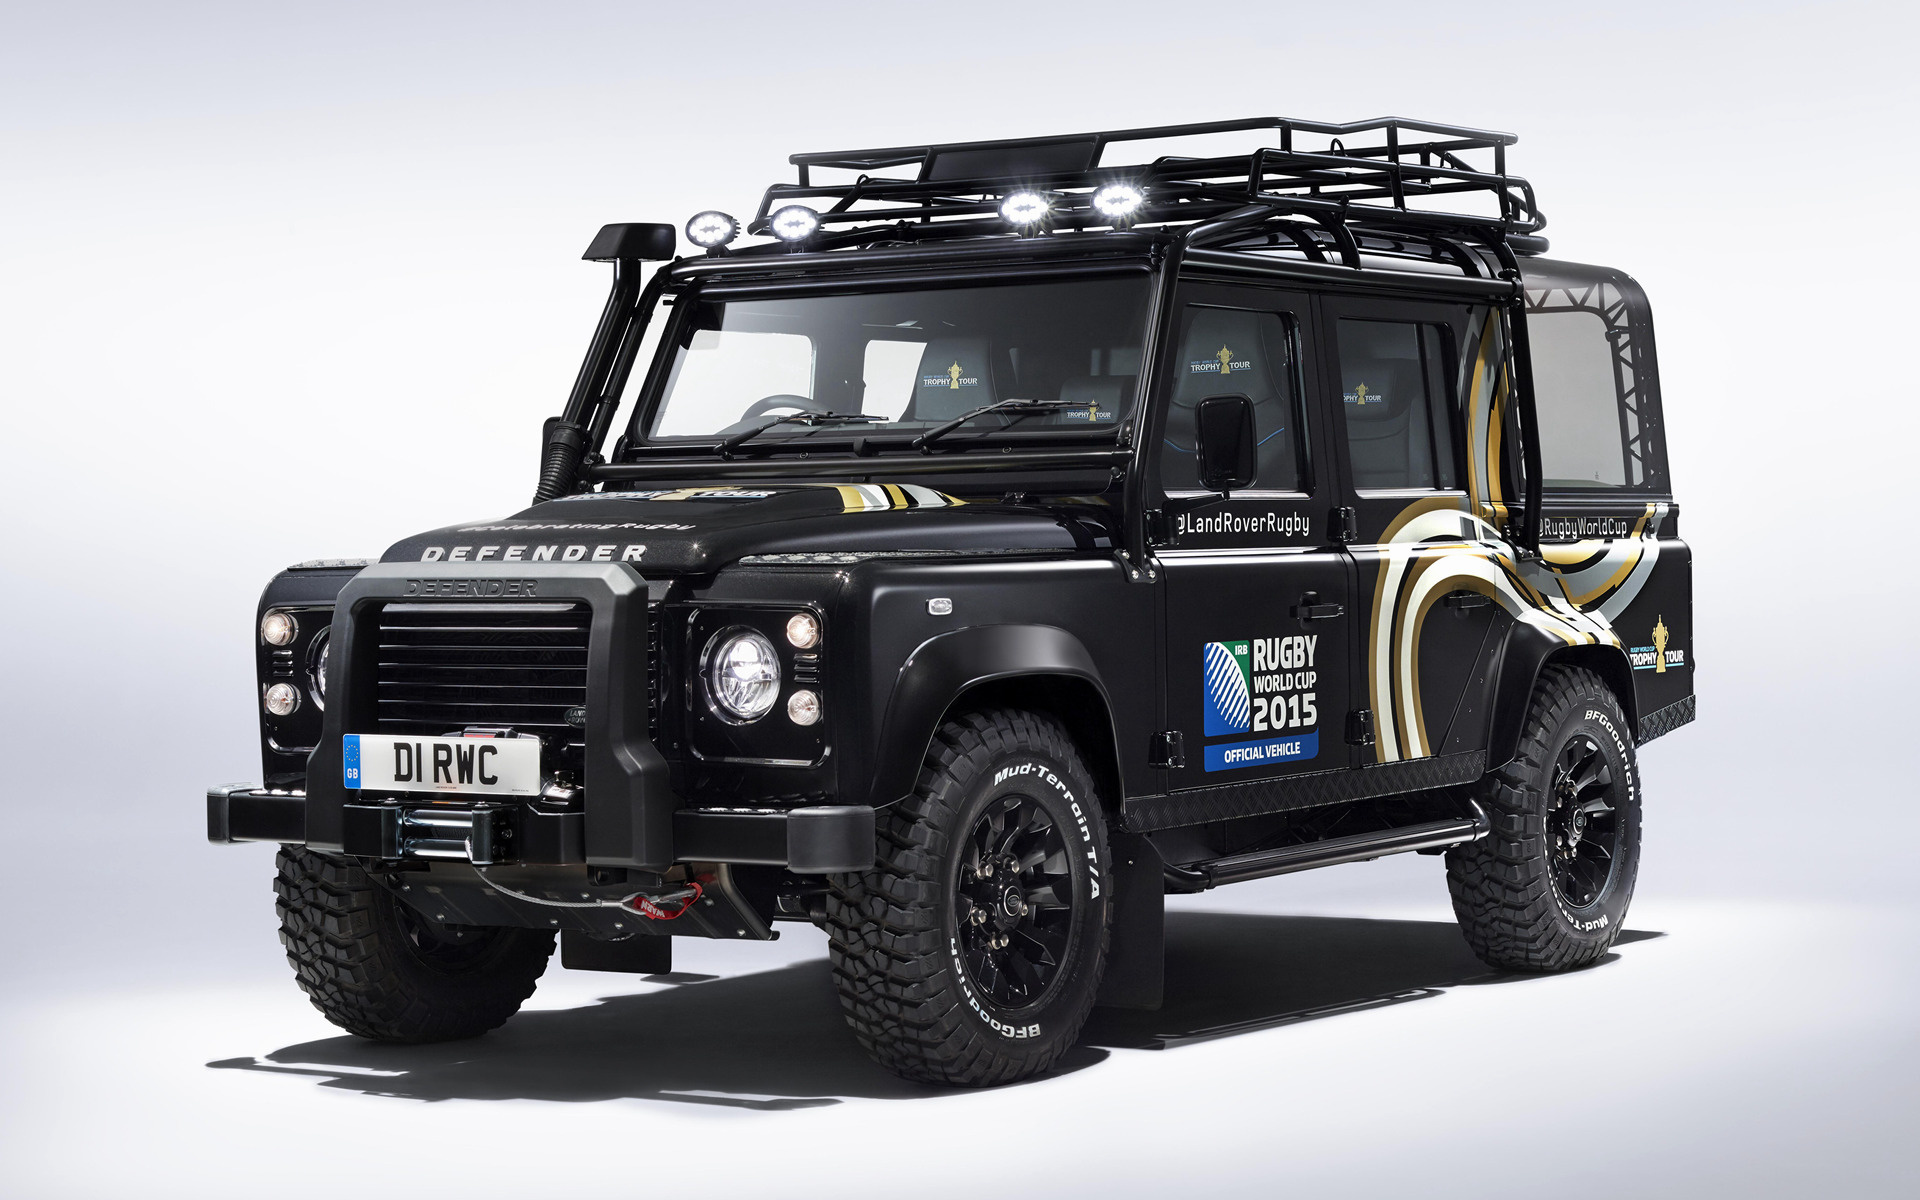 World Car Mazda >> 2015 Land Rover Defender Rugby World Cup 2015 - Wallpapers ...